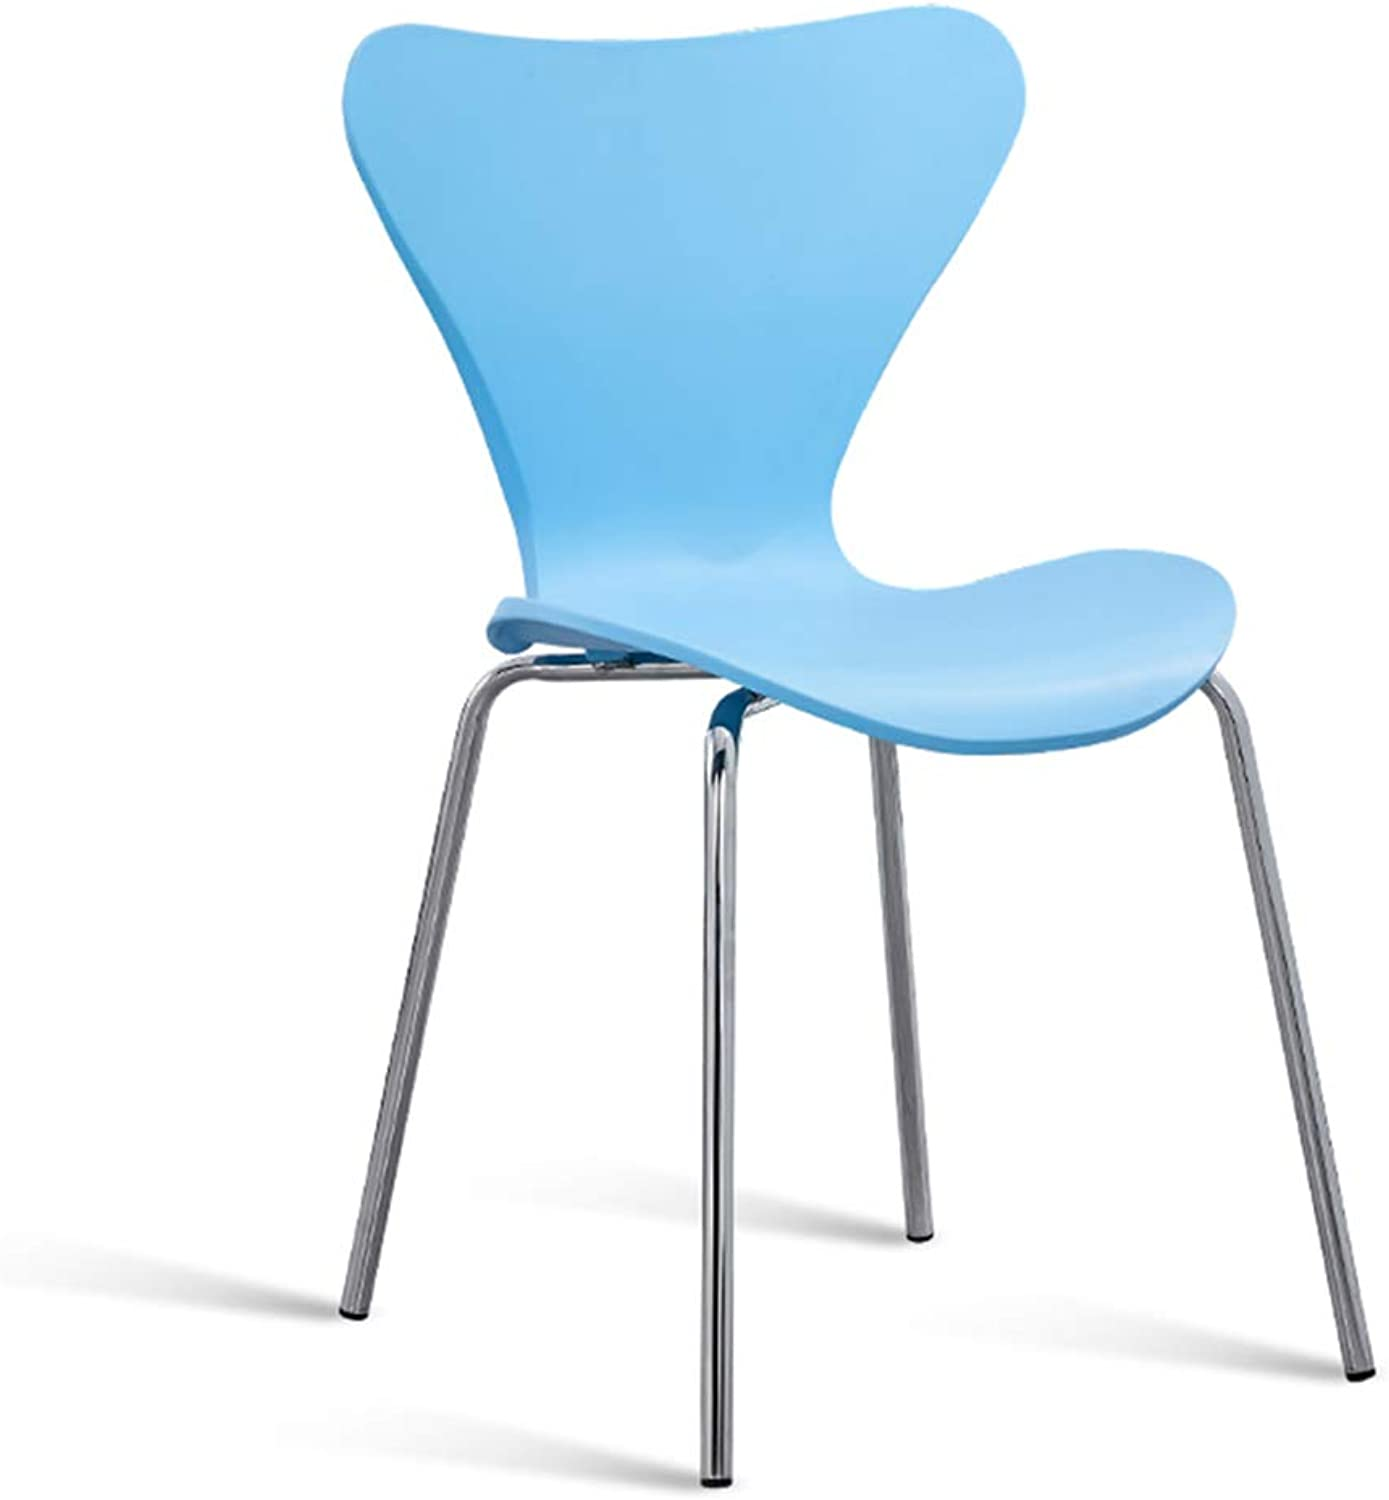 SYF Barstools Modern Minimalist Multi-Function Stainless Steel Ergonomic Design Assembly Curved Backrest Casual Bar Chair Bearing Weight 200kg A+ (color   bluee)